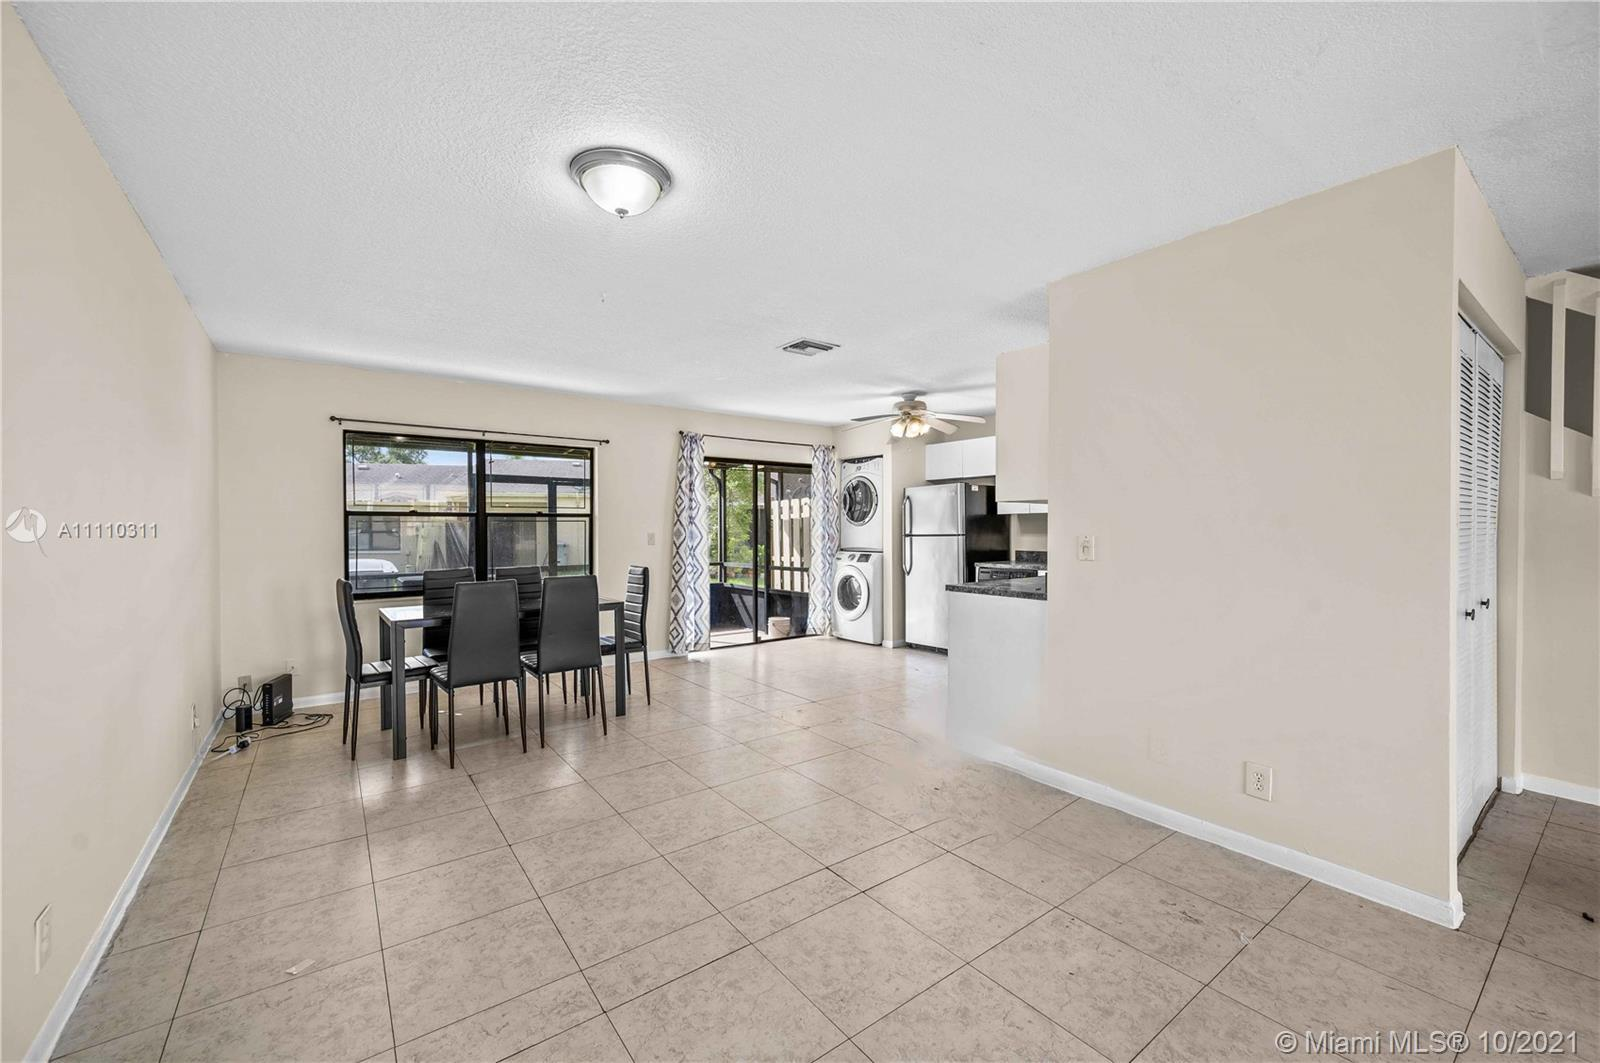 Welcome to this meticulously maintained 3 bed, 2.5 bath townhome conveniently located close to I-95,